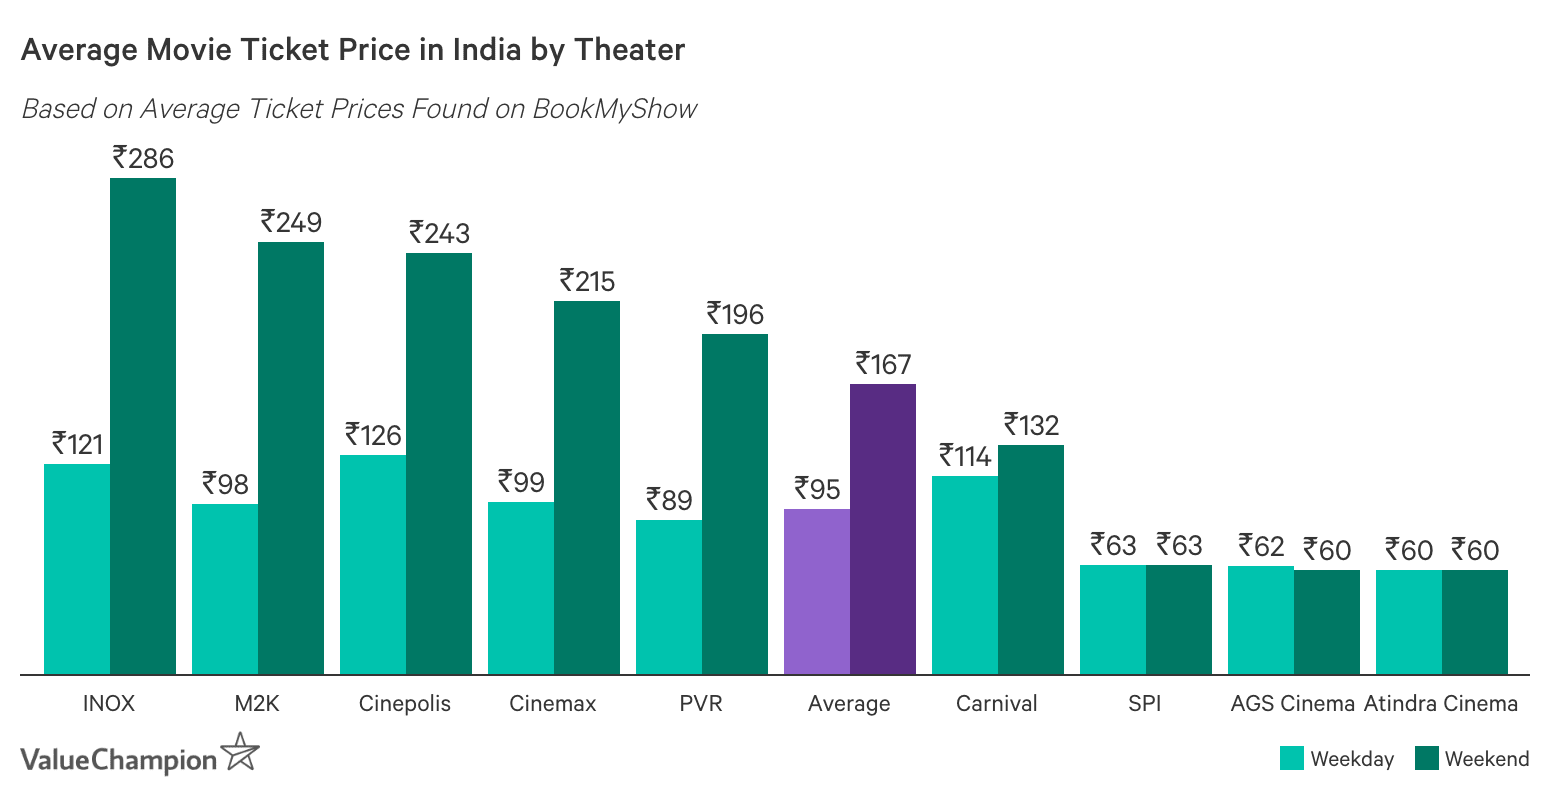 Graph showing India's Average Cost of Movie Tickets by Theater